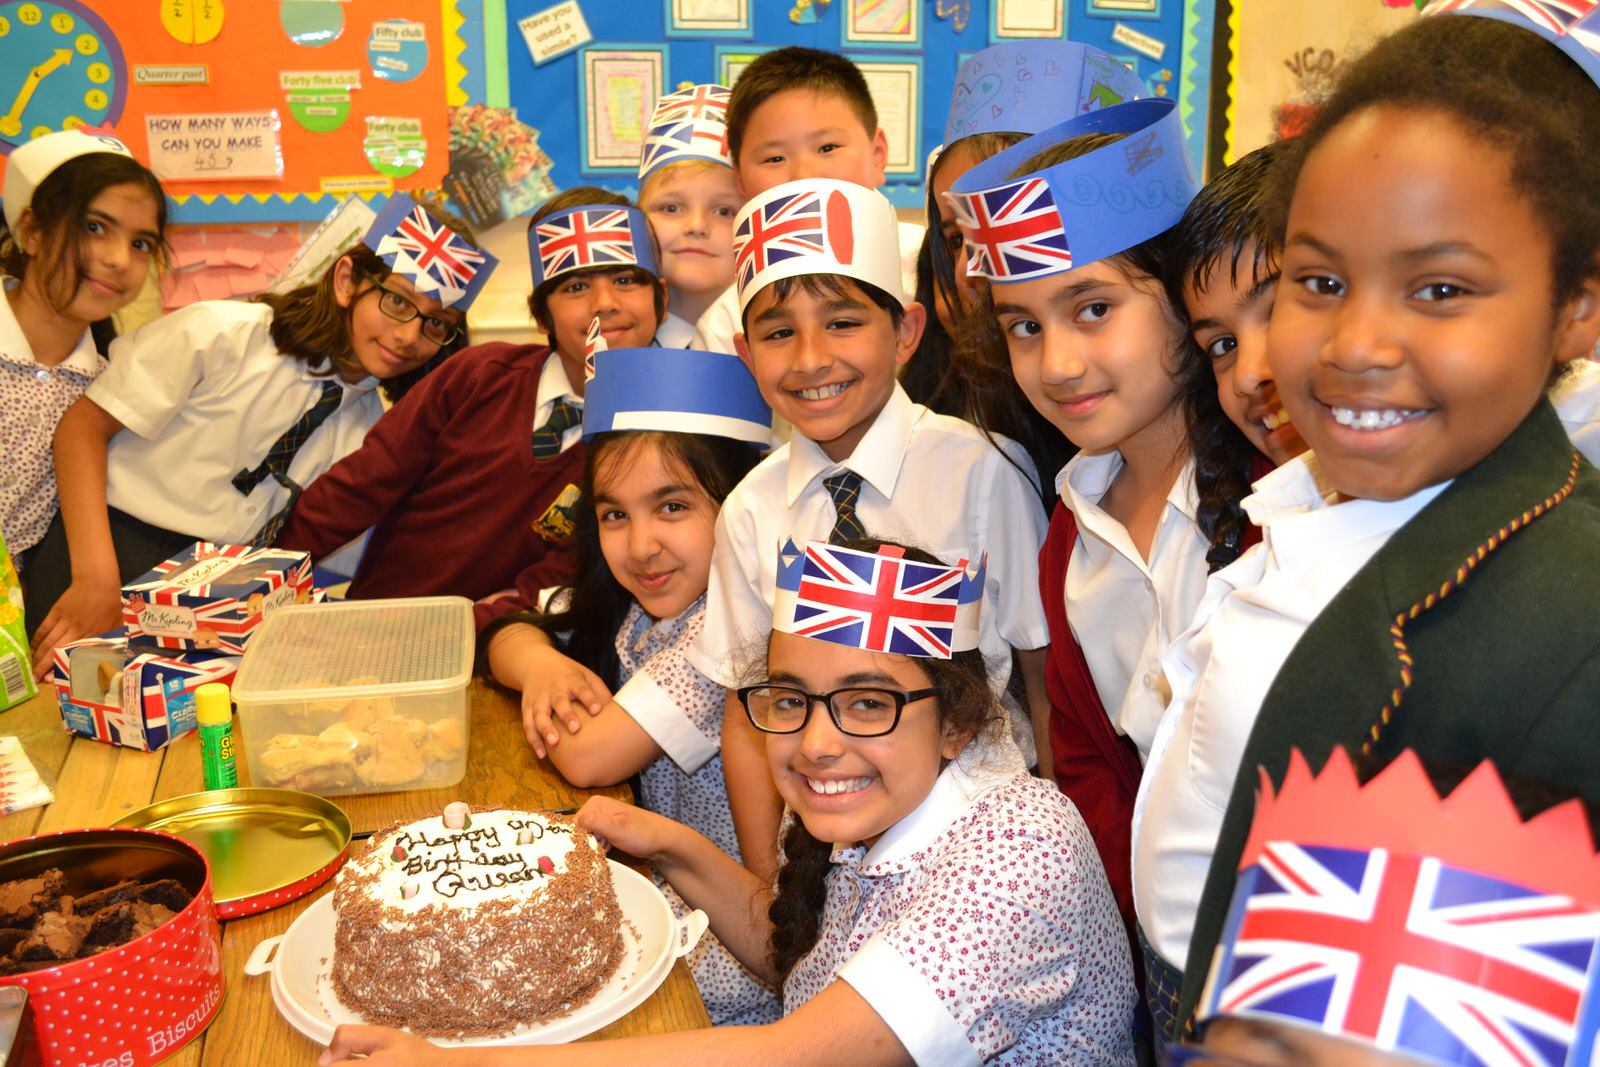 Queen's 90th Birthday celebrations